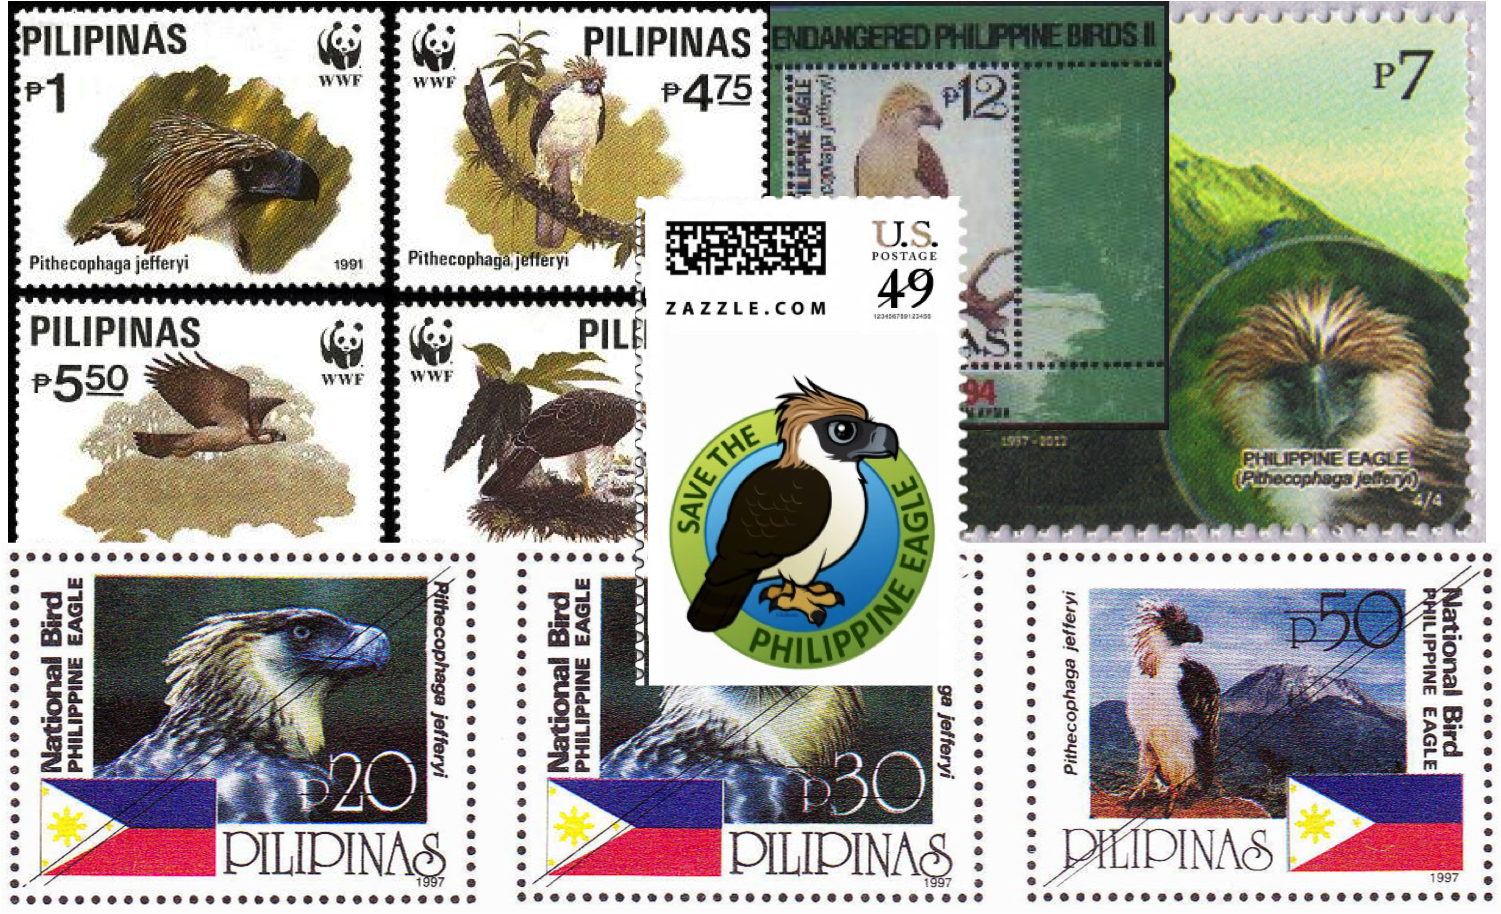 Philippine Eagle stamp collage.png